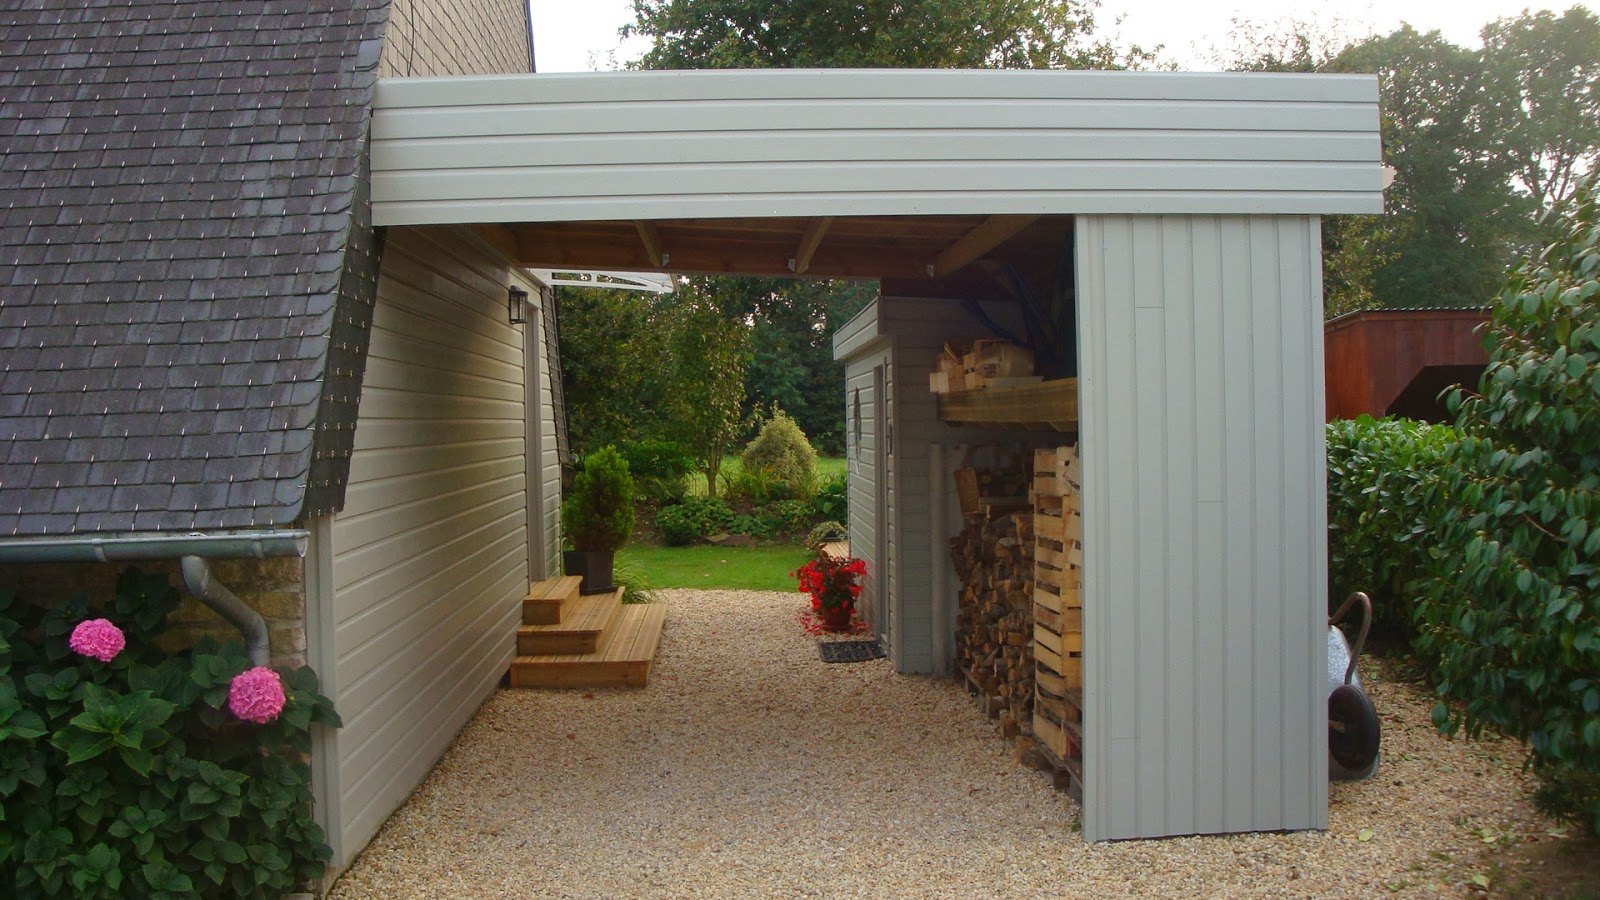 Michel le coz agencement d coration ext rieur car port for Agencement terrasse jardin